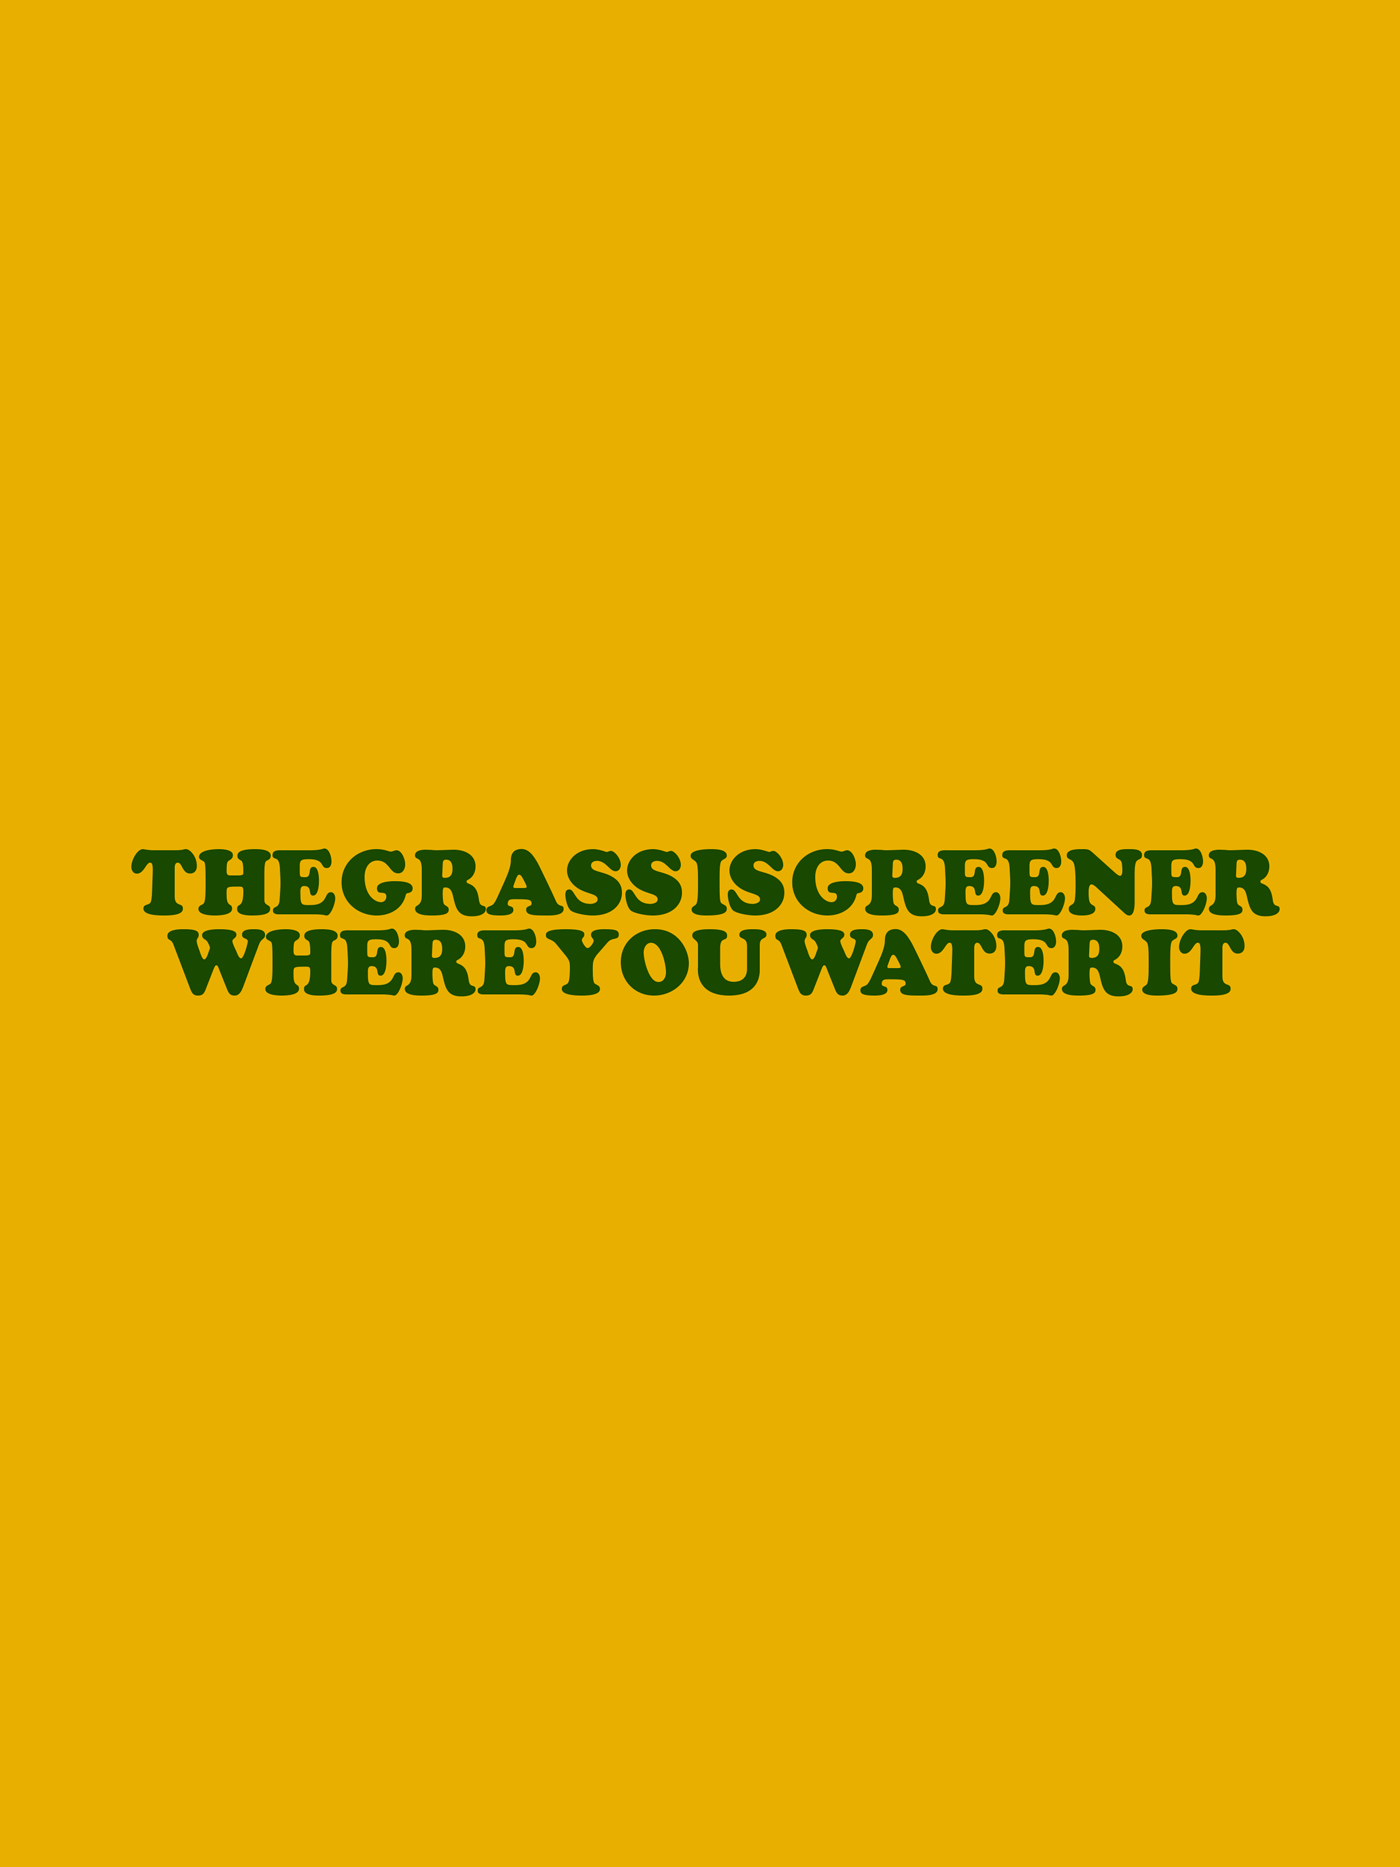 grass-is-greener-where-you-water-it-ethan-solouki